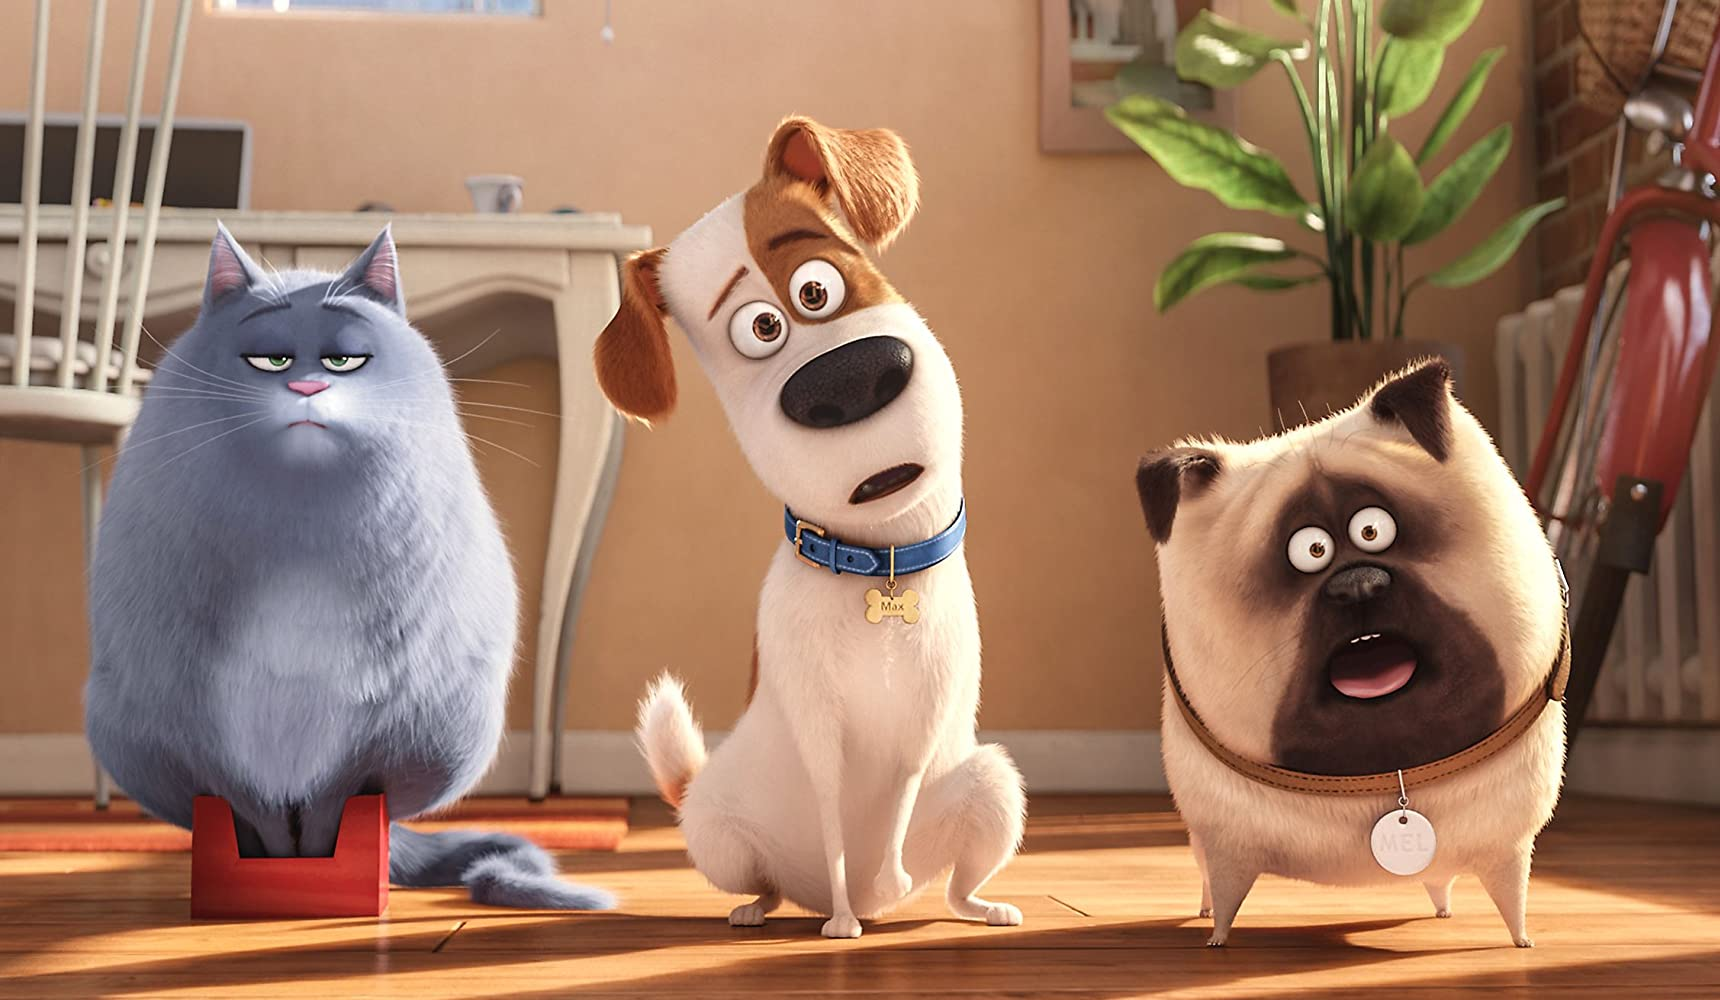 The Secret Life of Pets / Illumination Entertainment & Universal Pictures. © 2019. All rights reserved.